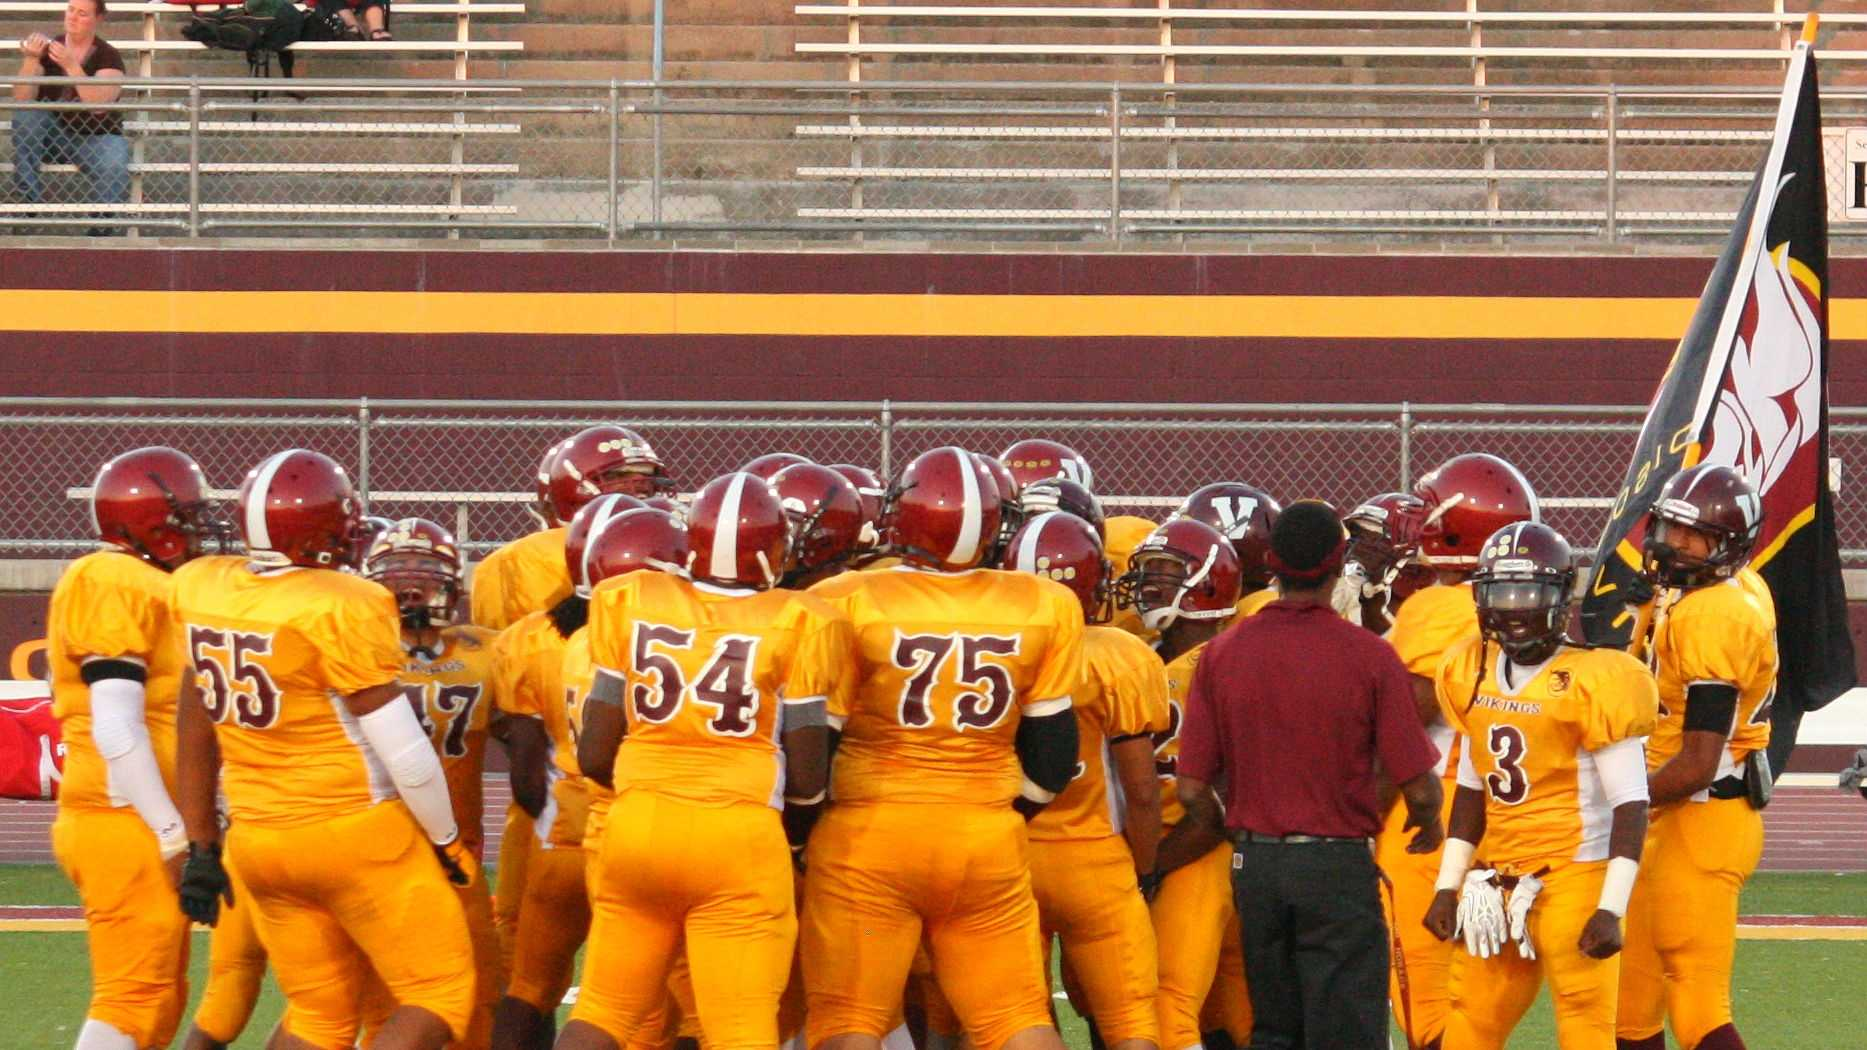 Chavez Vikings football.jpg